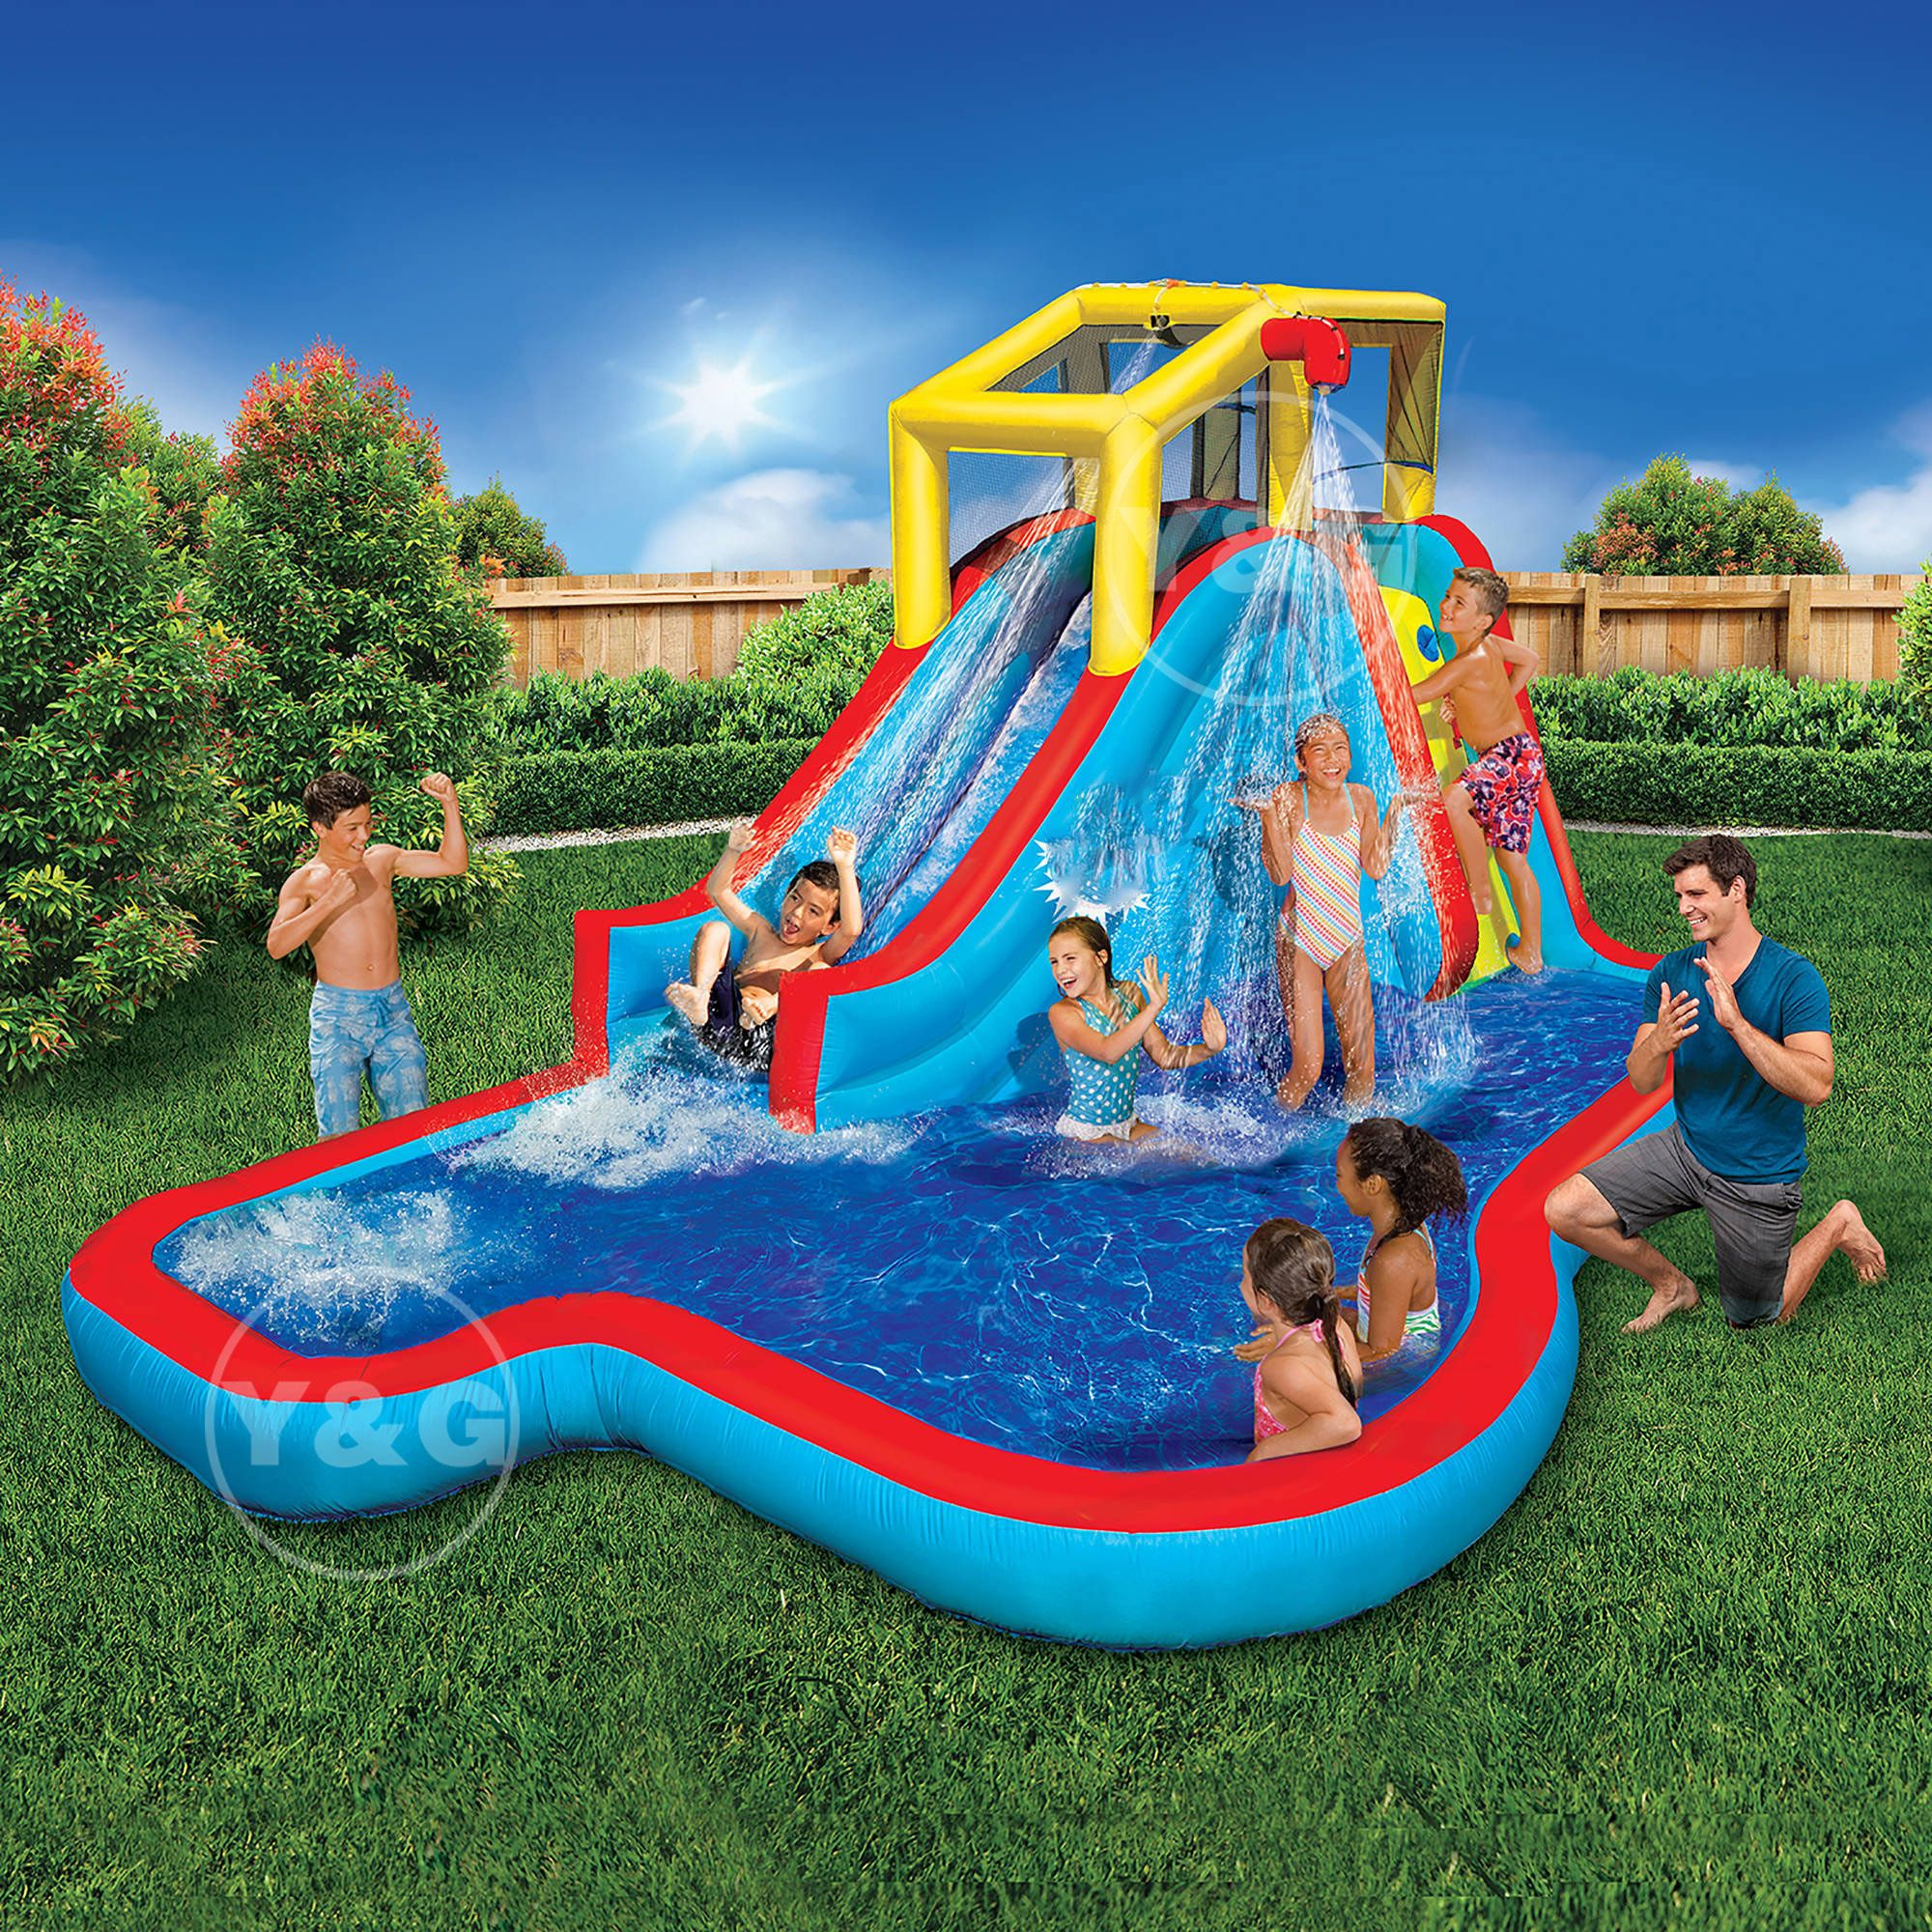 The most popular children's inflatable water slides combo